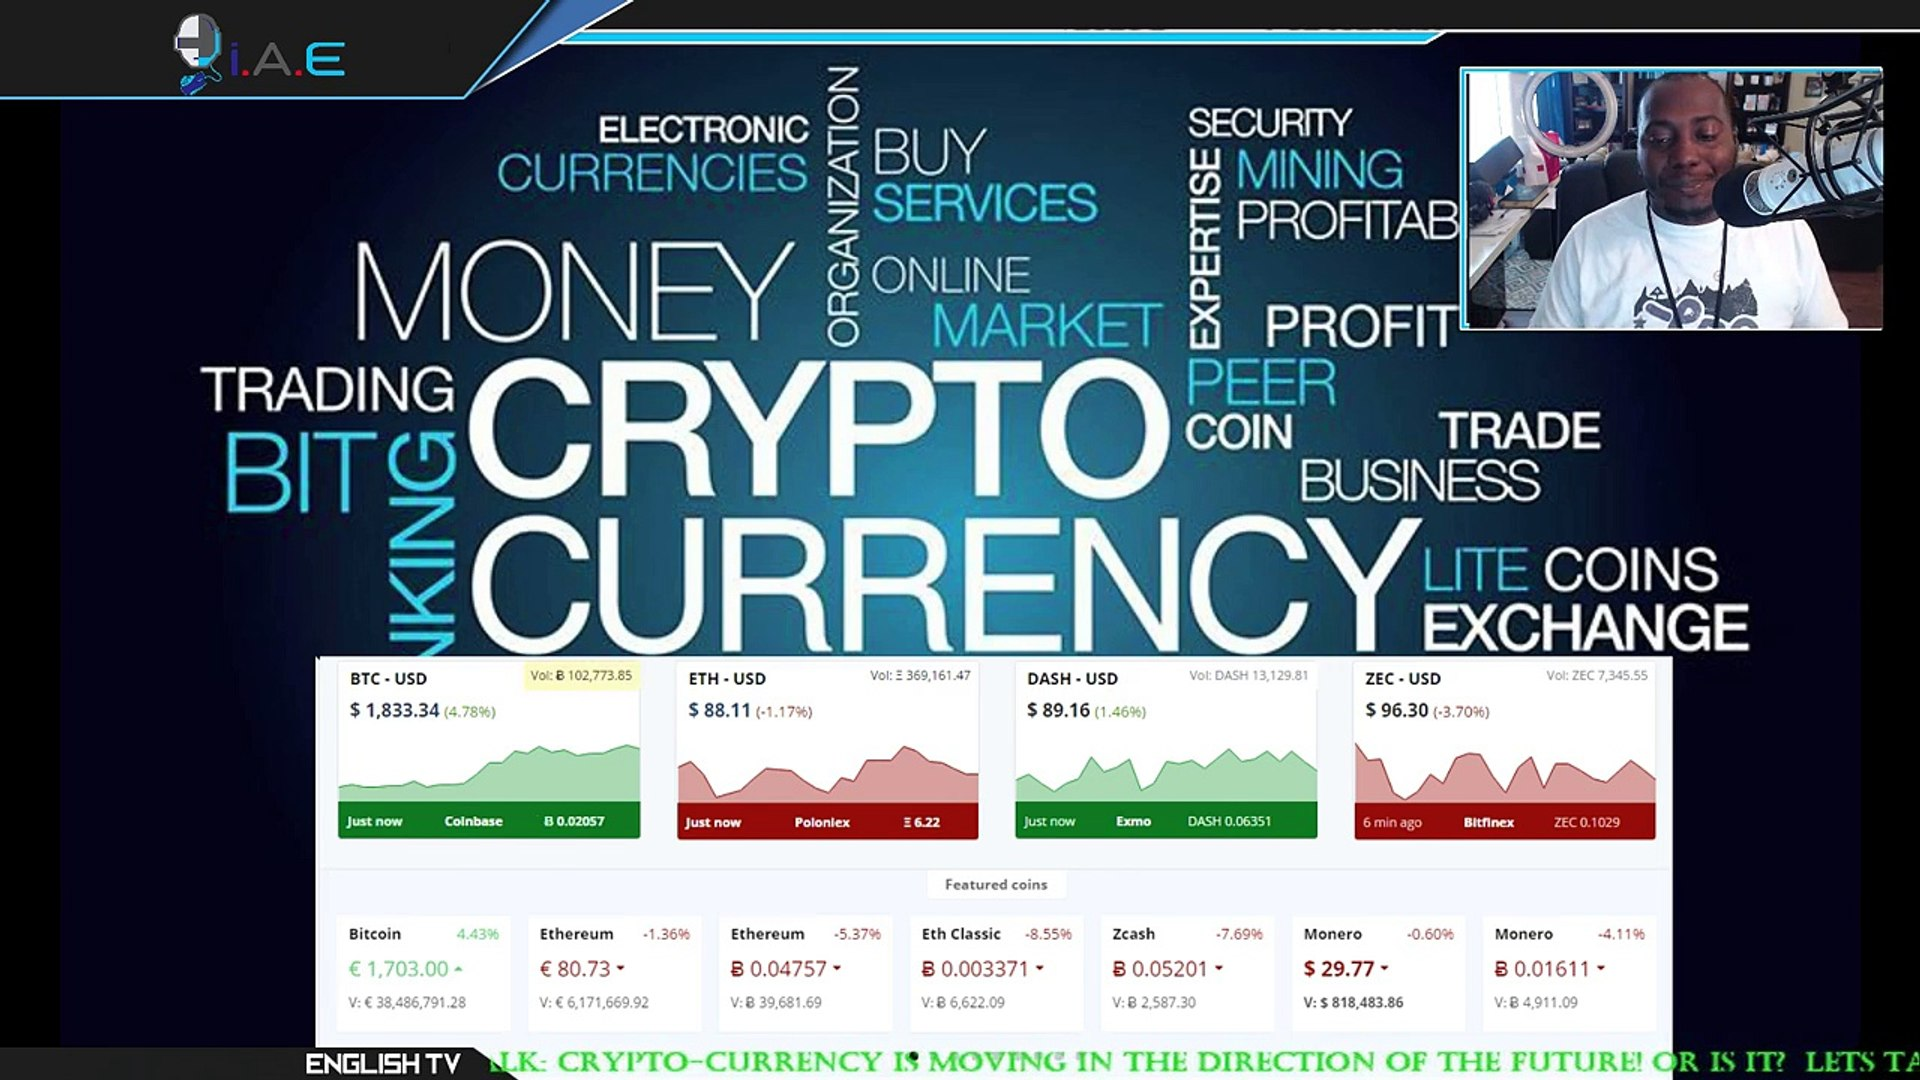 LETS TALK: Crypto-Currency And The Importance Of Investment